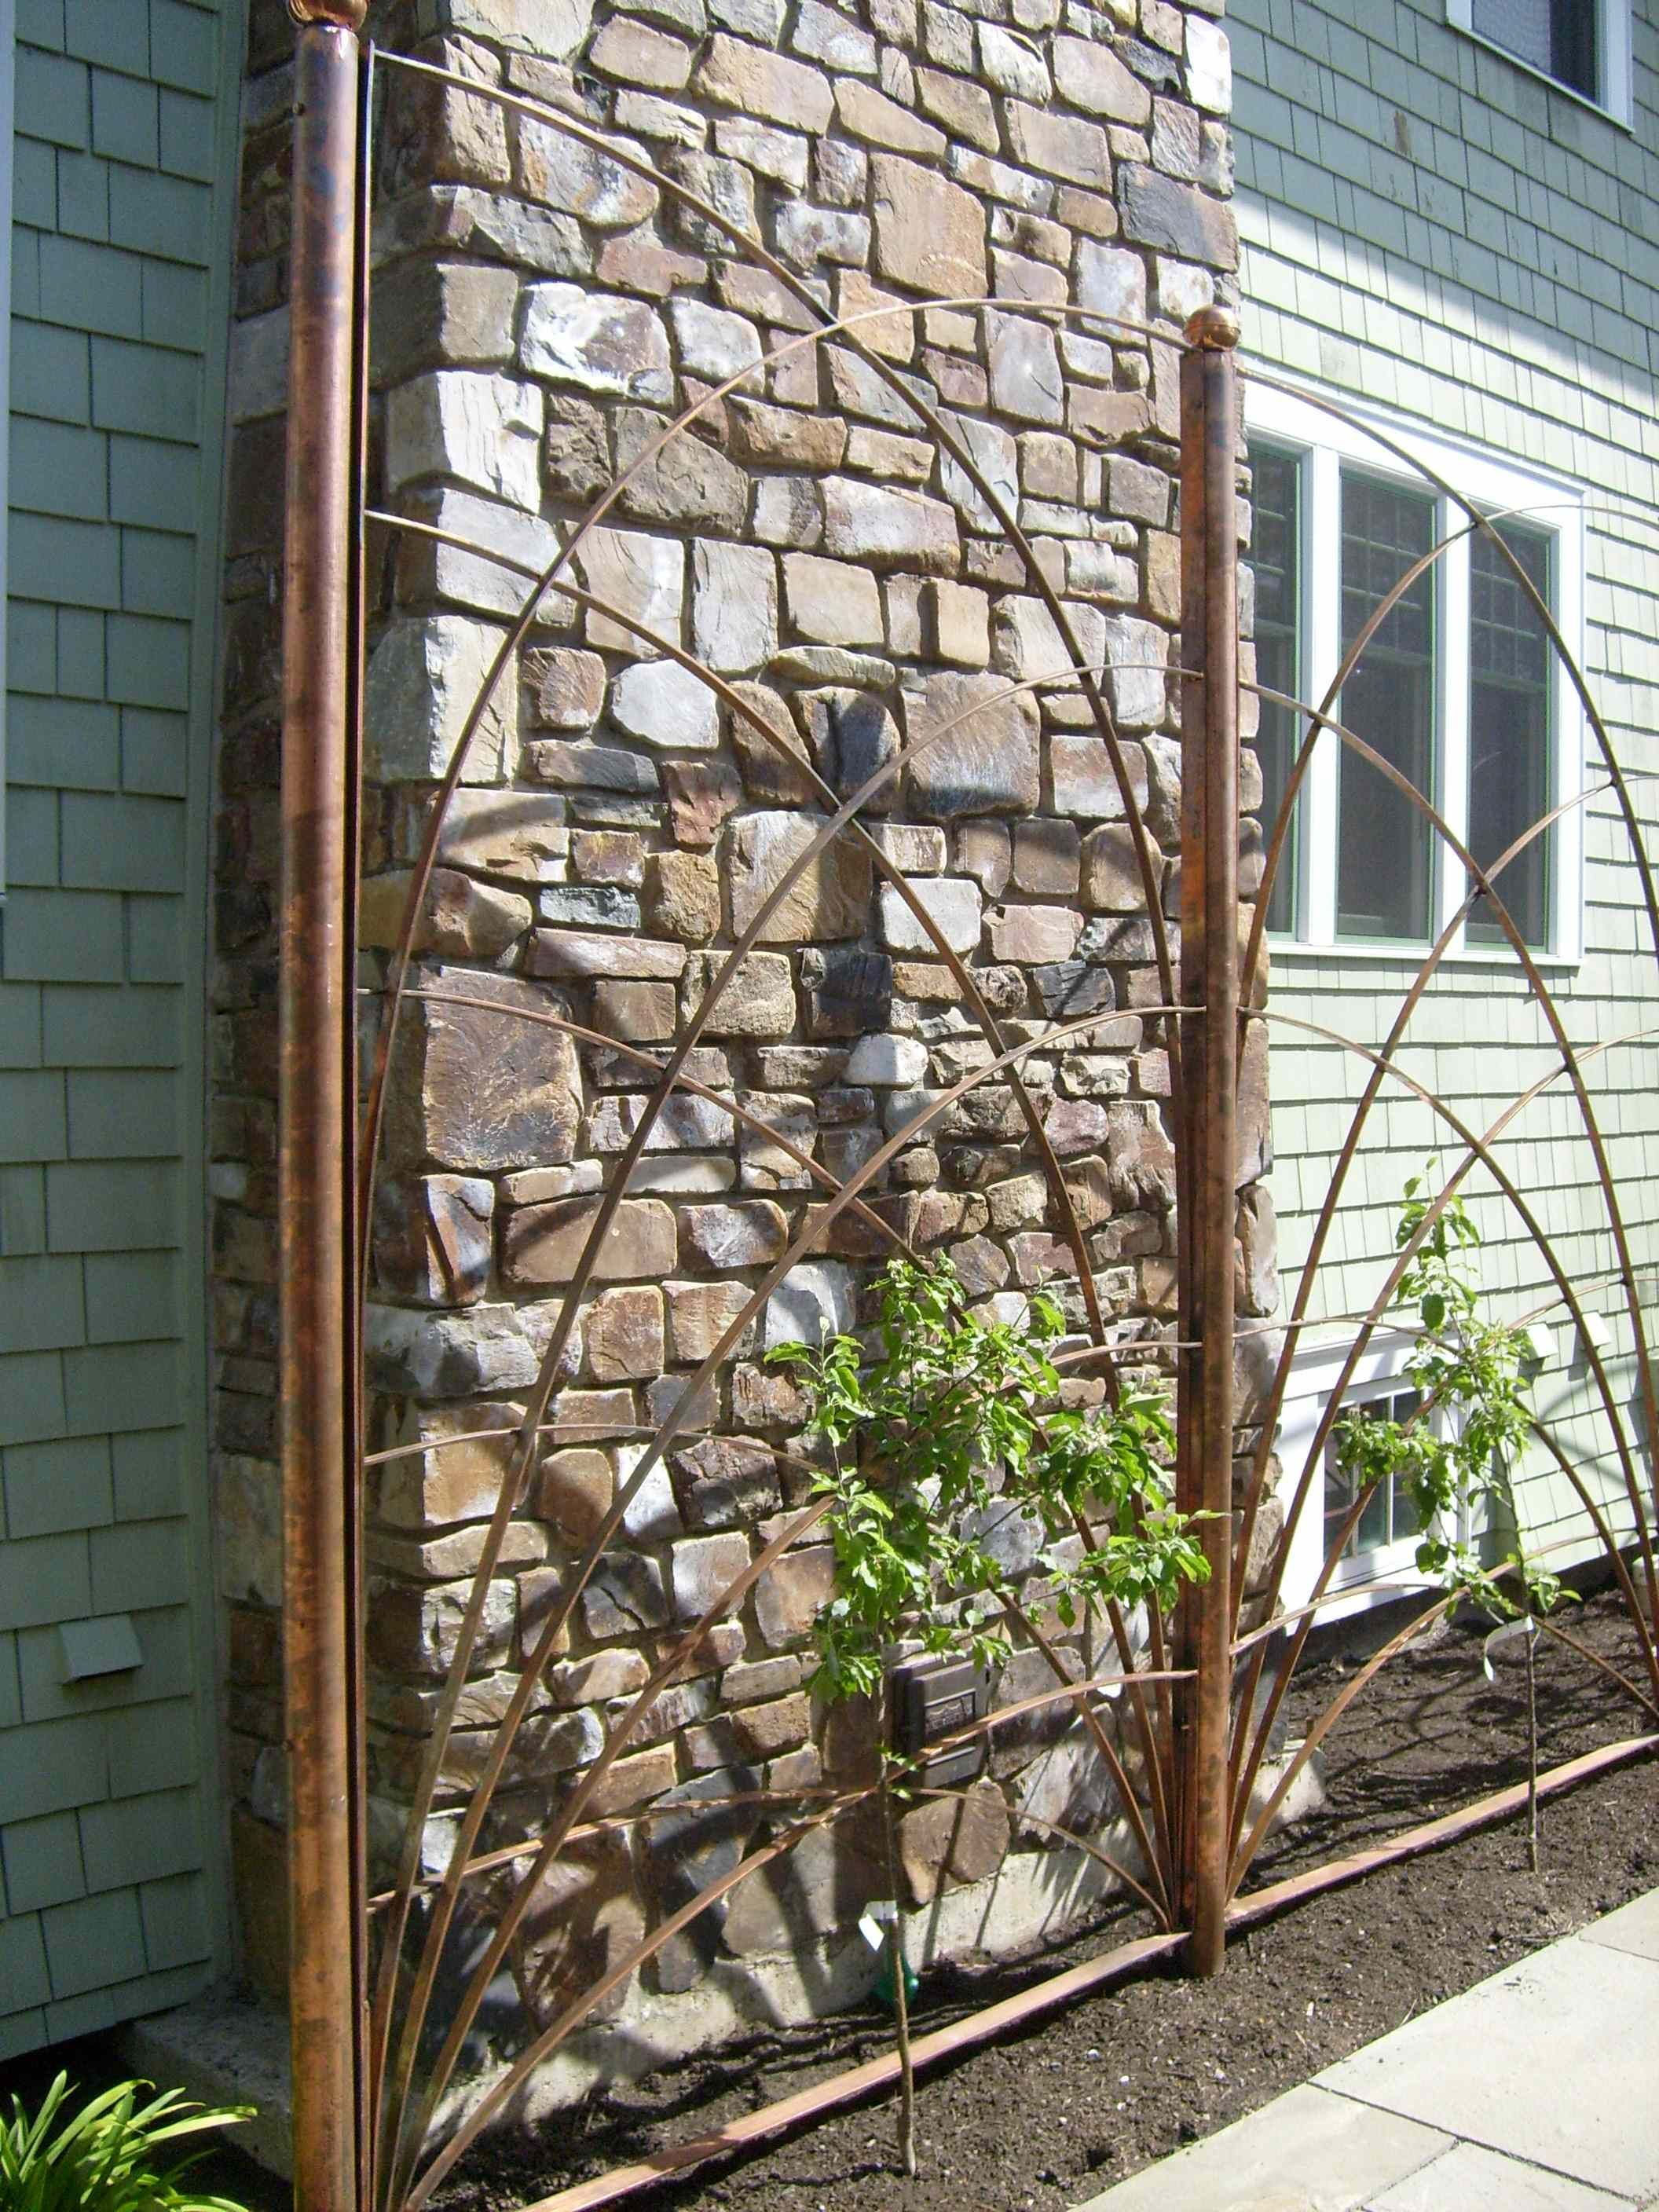 Copper Pipe Trellis Designs - The Chelsea Trellis The Chelsea